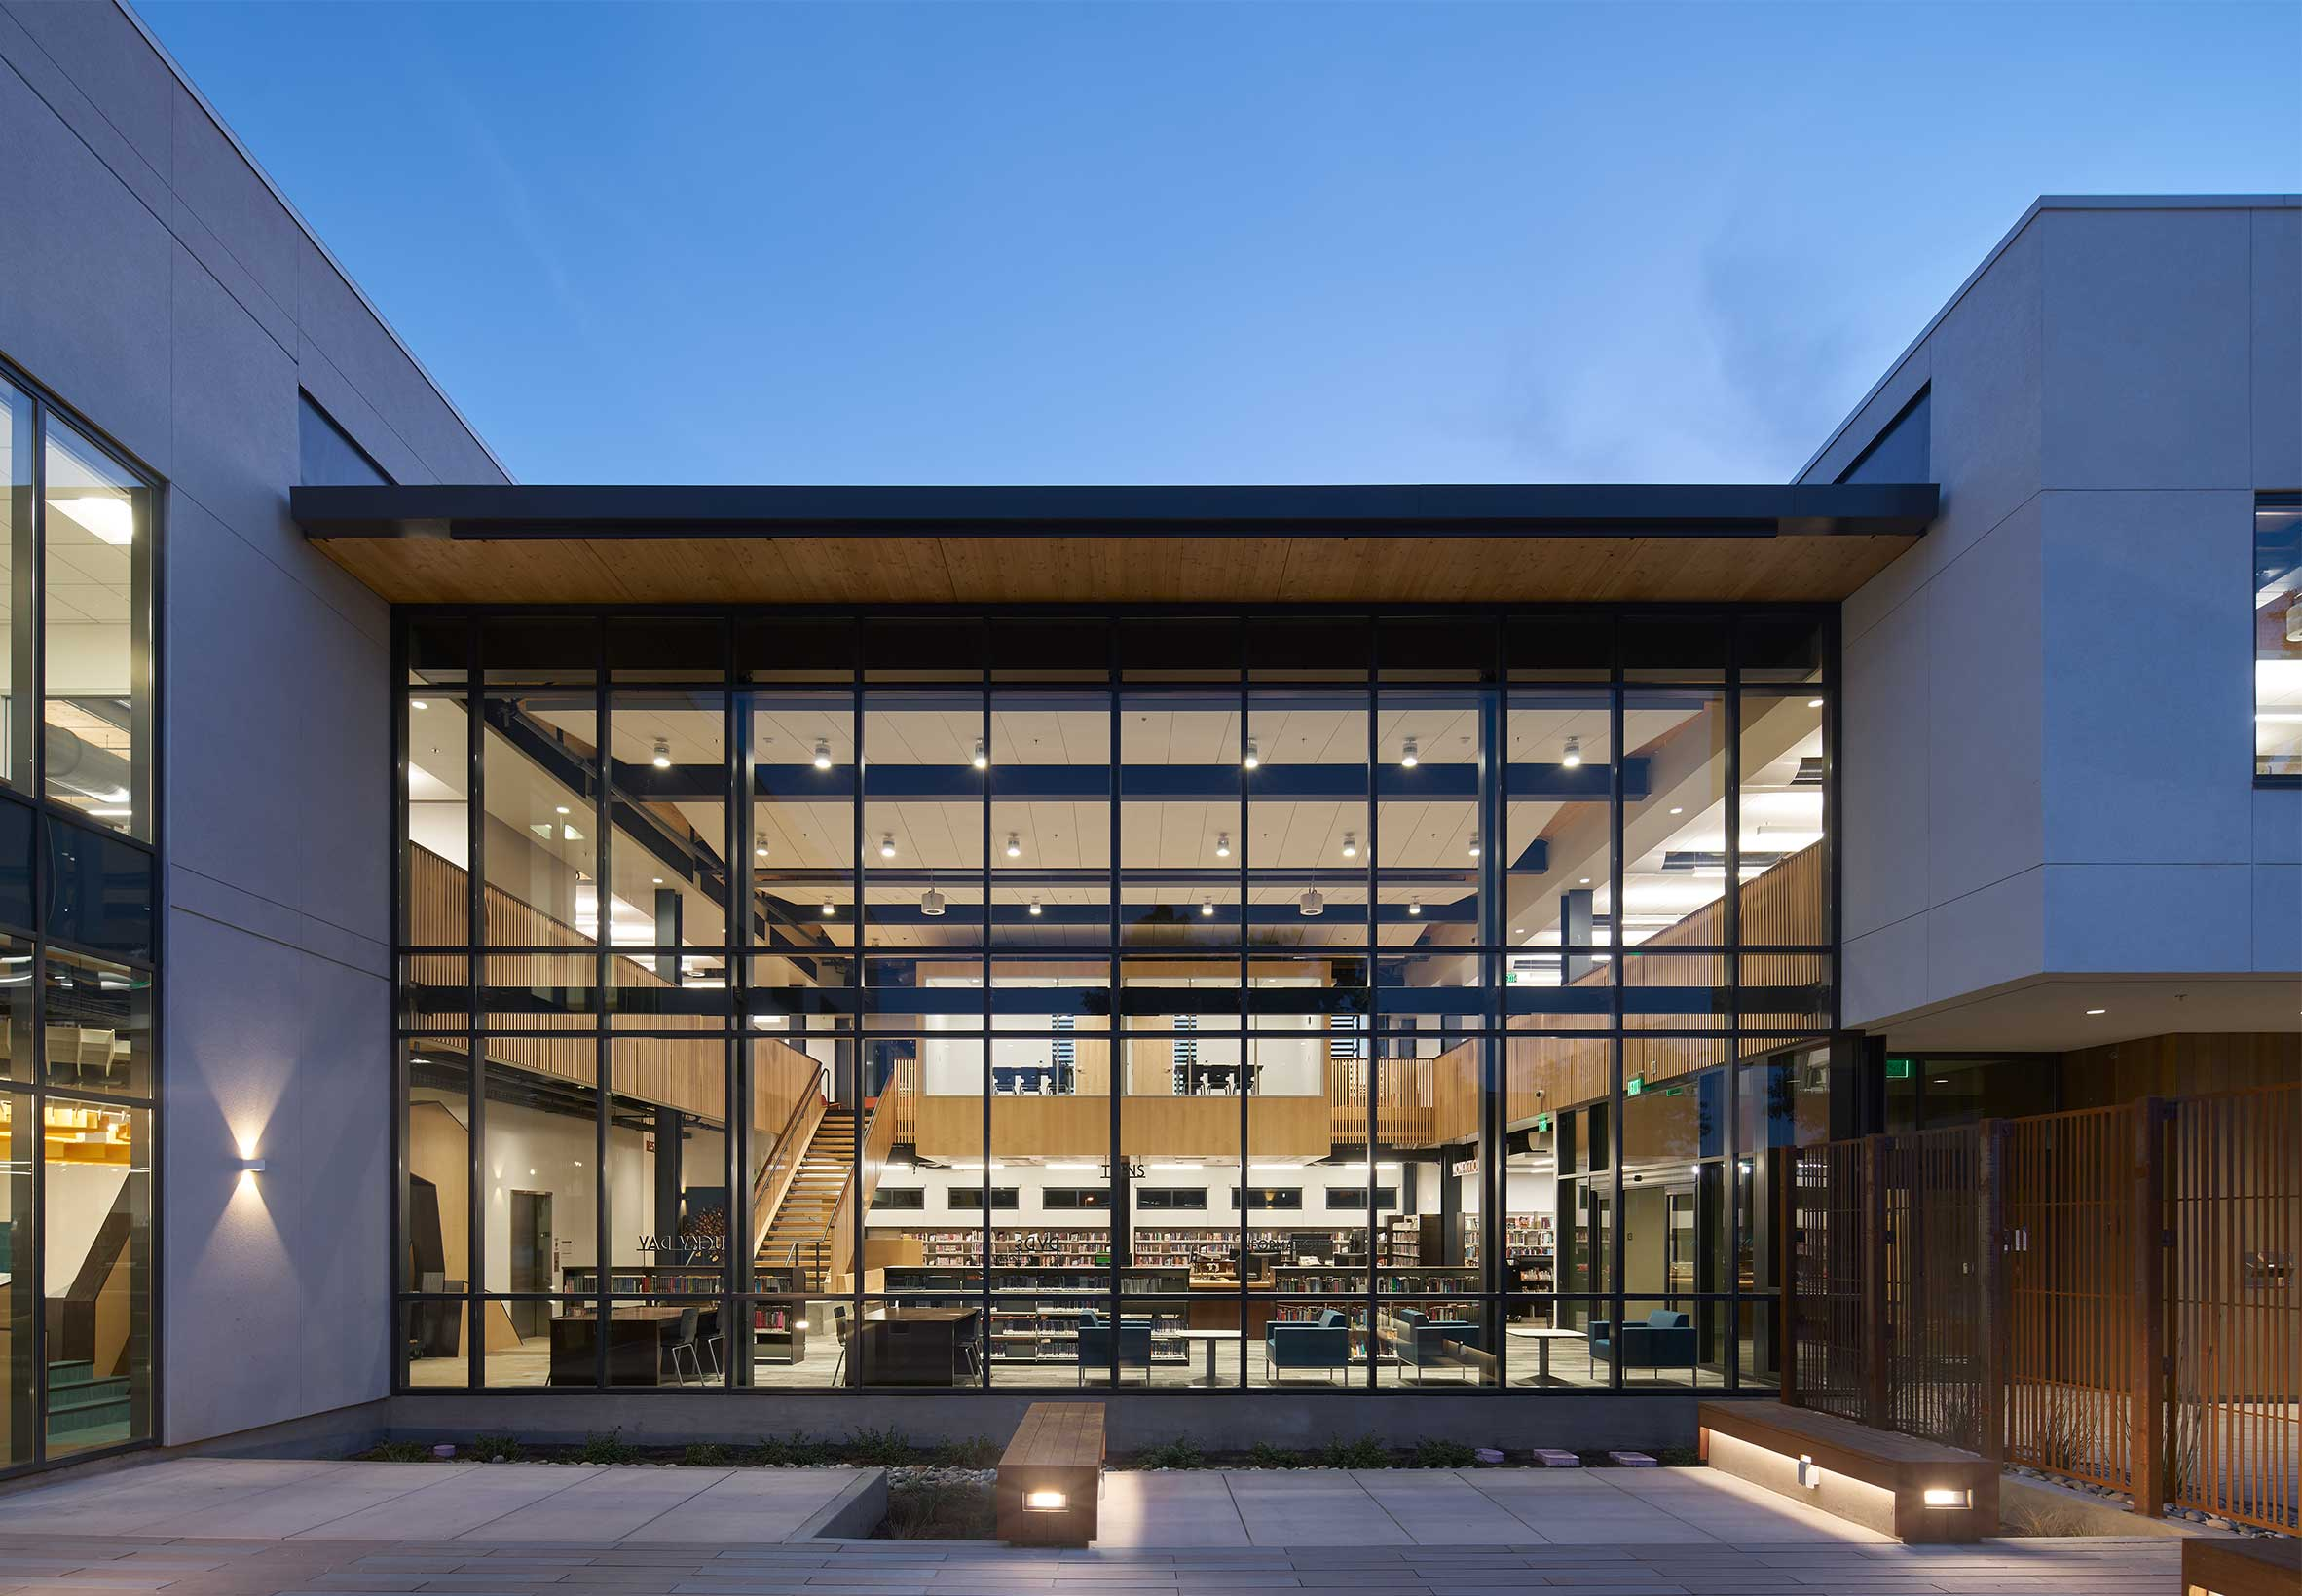 Brentwood Public Library finished exterior with lights on at dusk